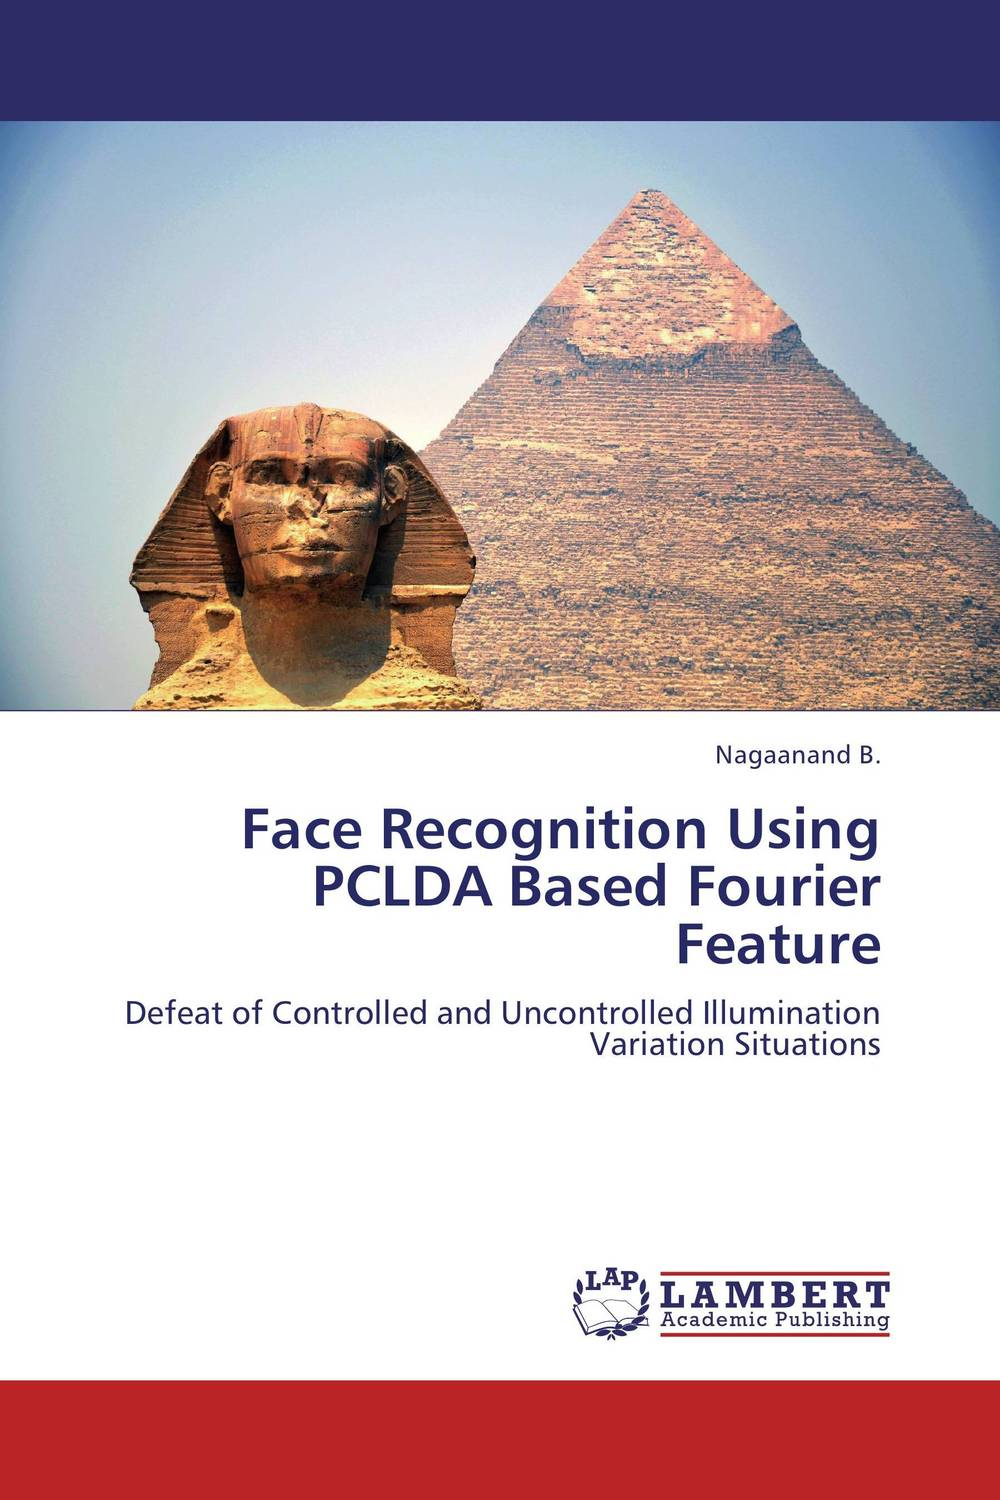 все цены на Face Recognition Using PCLDA Based Fourier Feature онлайн